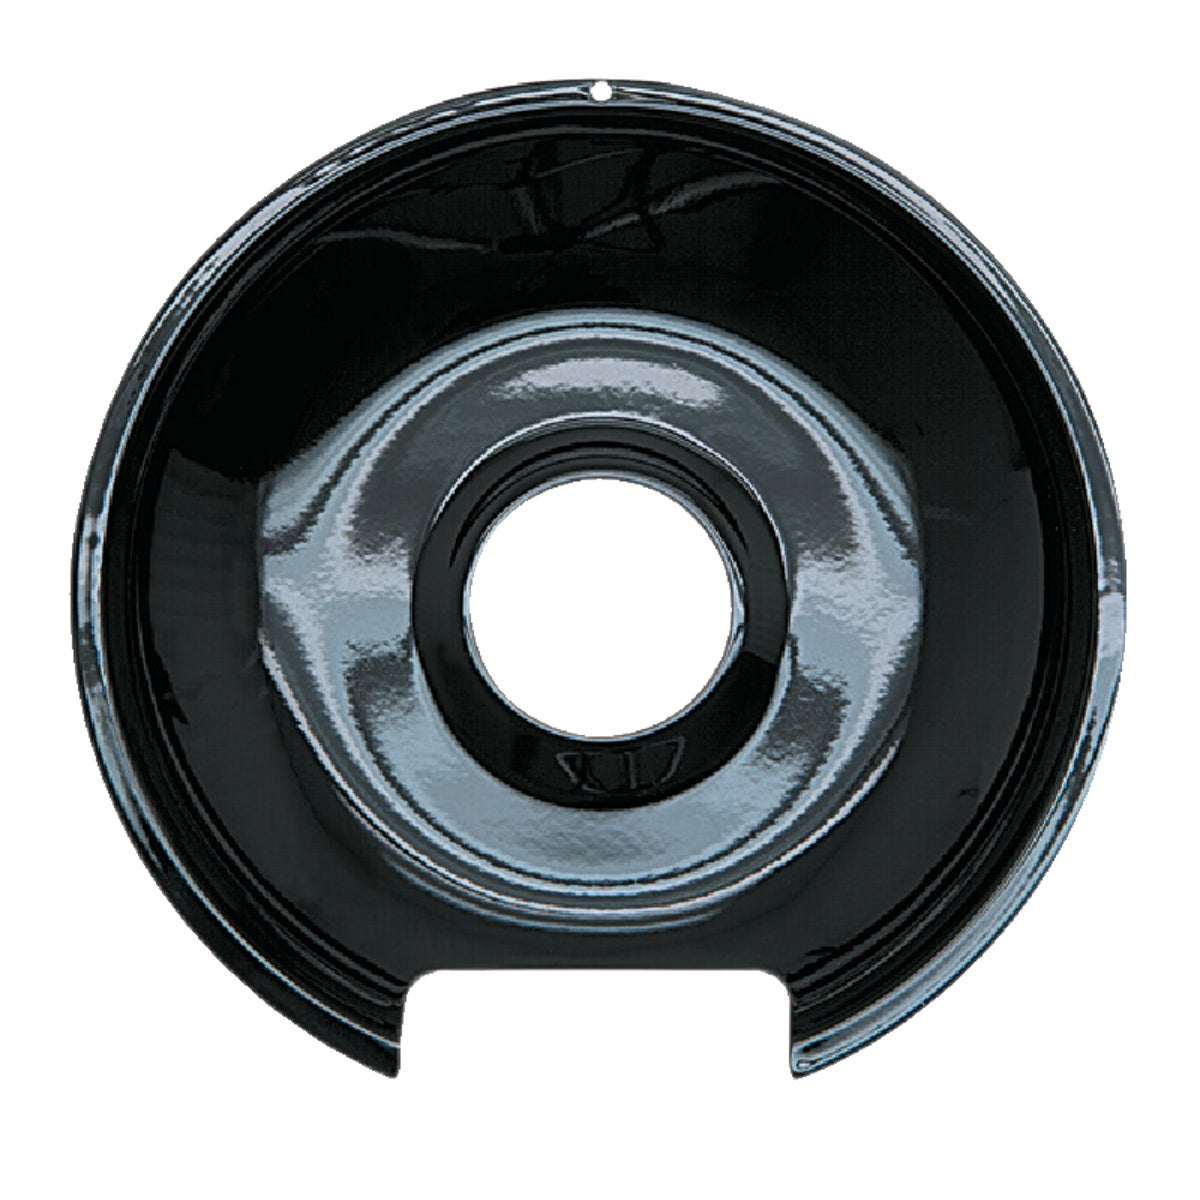 "6"" ELECTRIC DRIP PAN - P-103 by Range Kleen Mfg Inc"